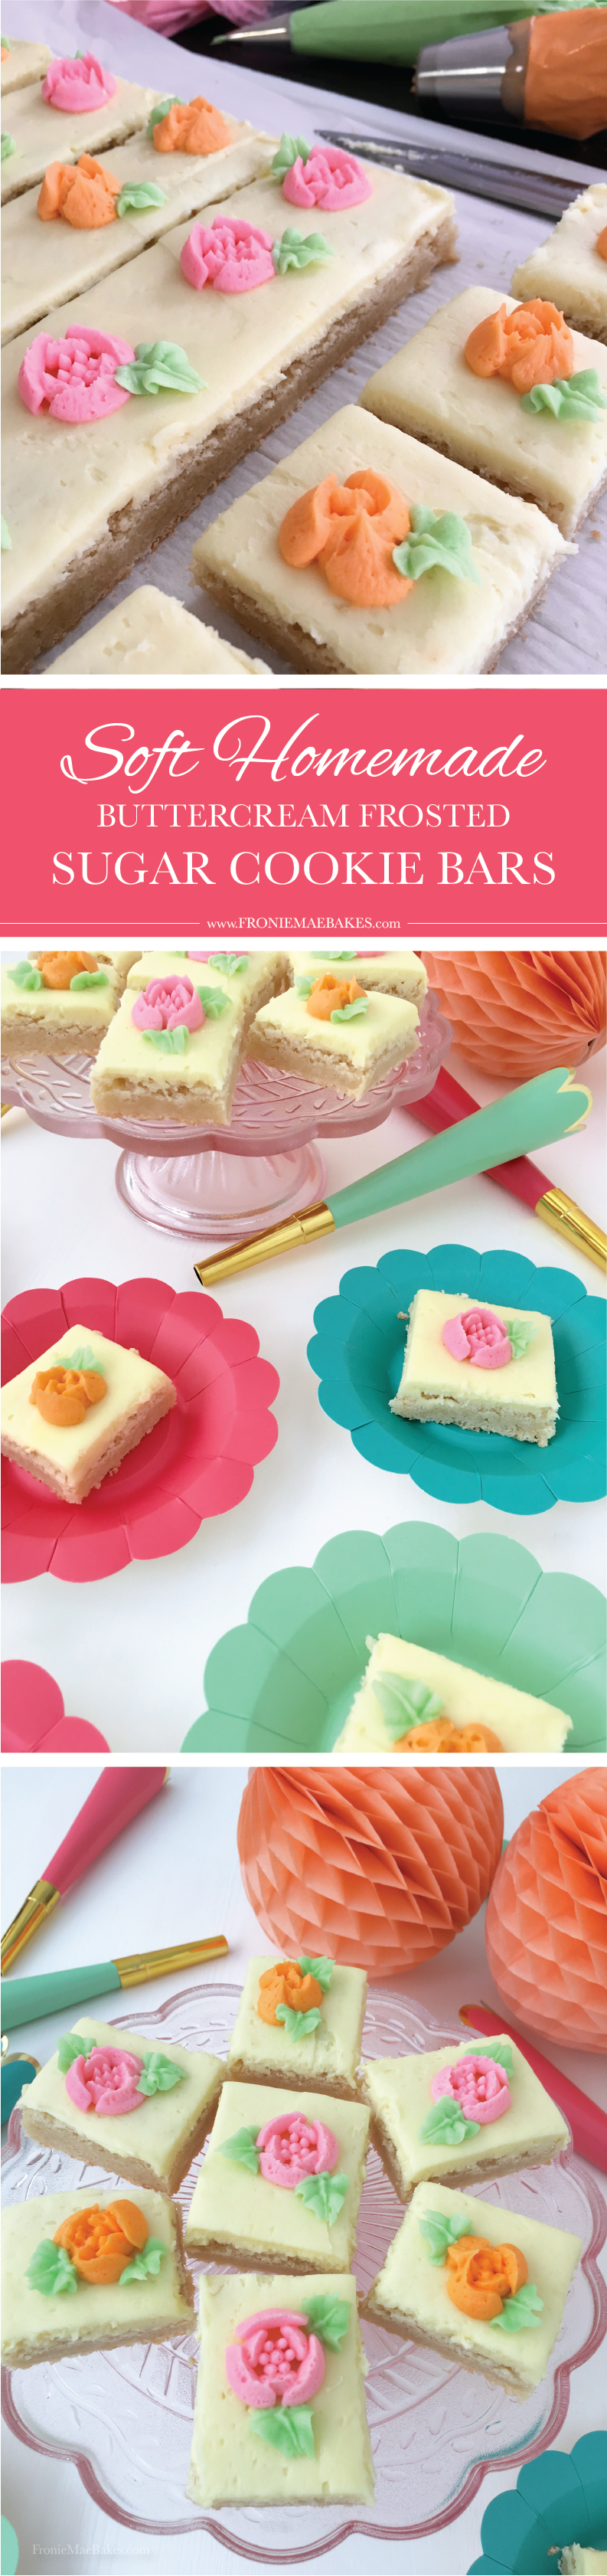 Make these Soft Homemade Buttercream Frosted Sugar Cookie Bars for any occasion. Recipe is here: www.FronieMaeBakes.com